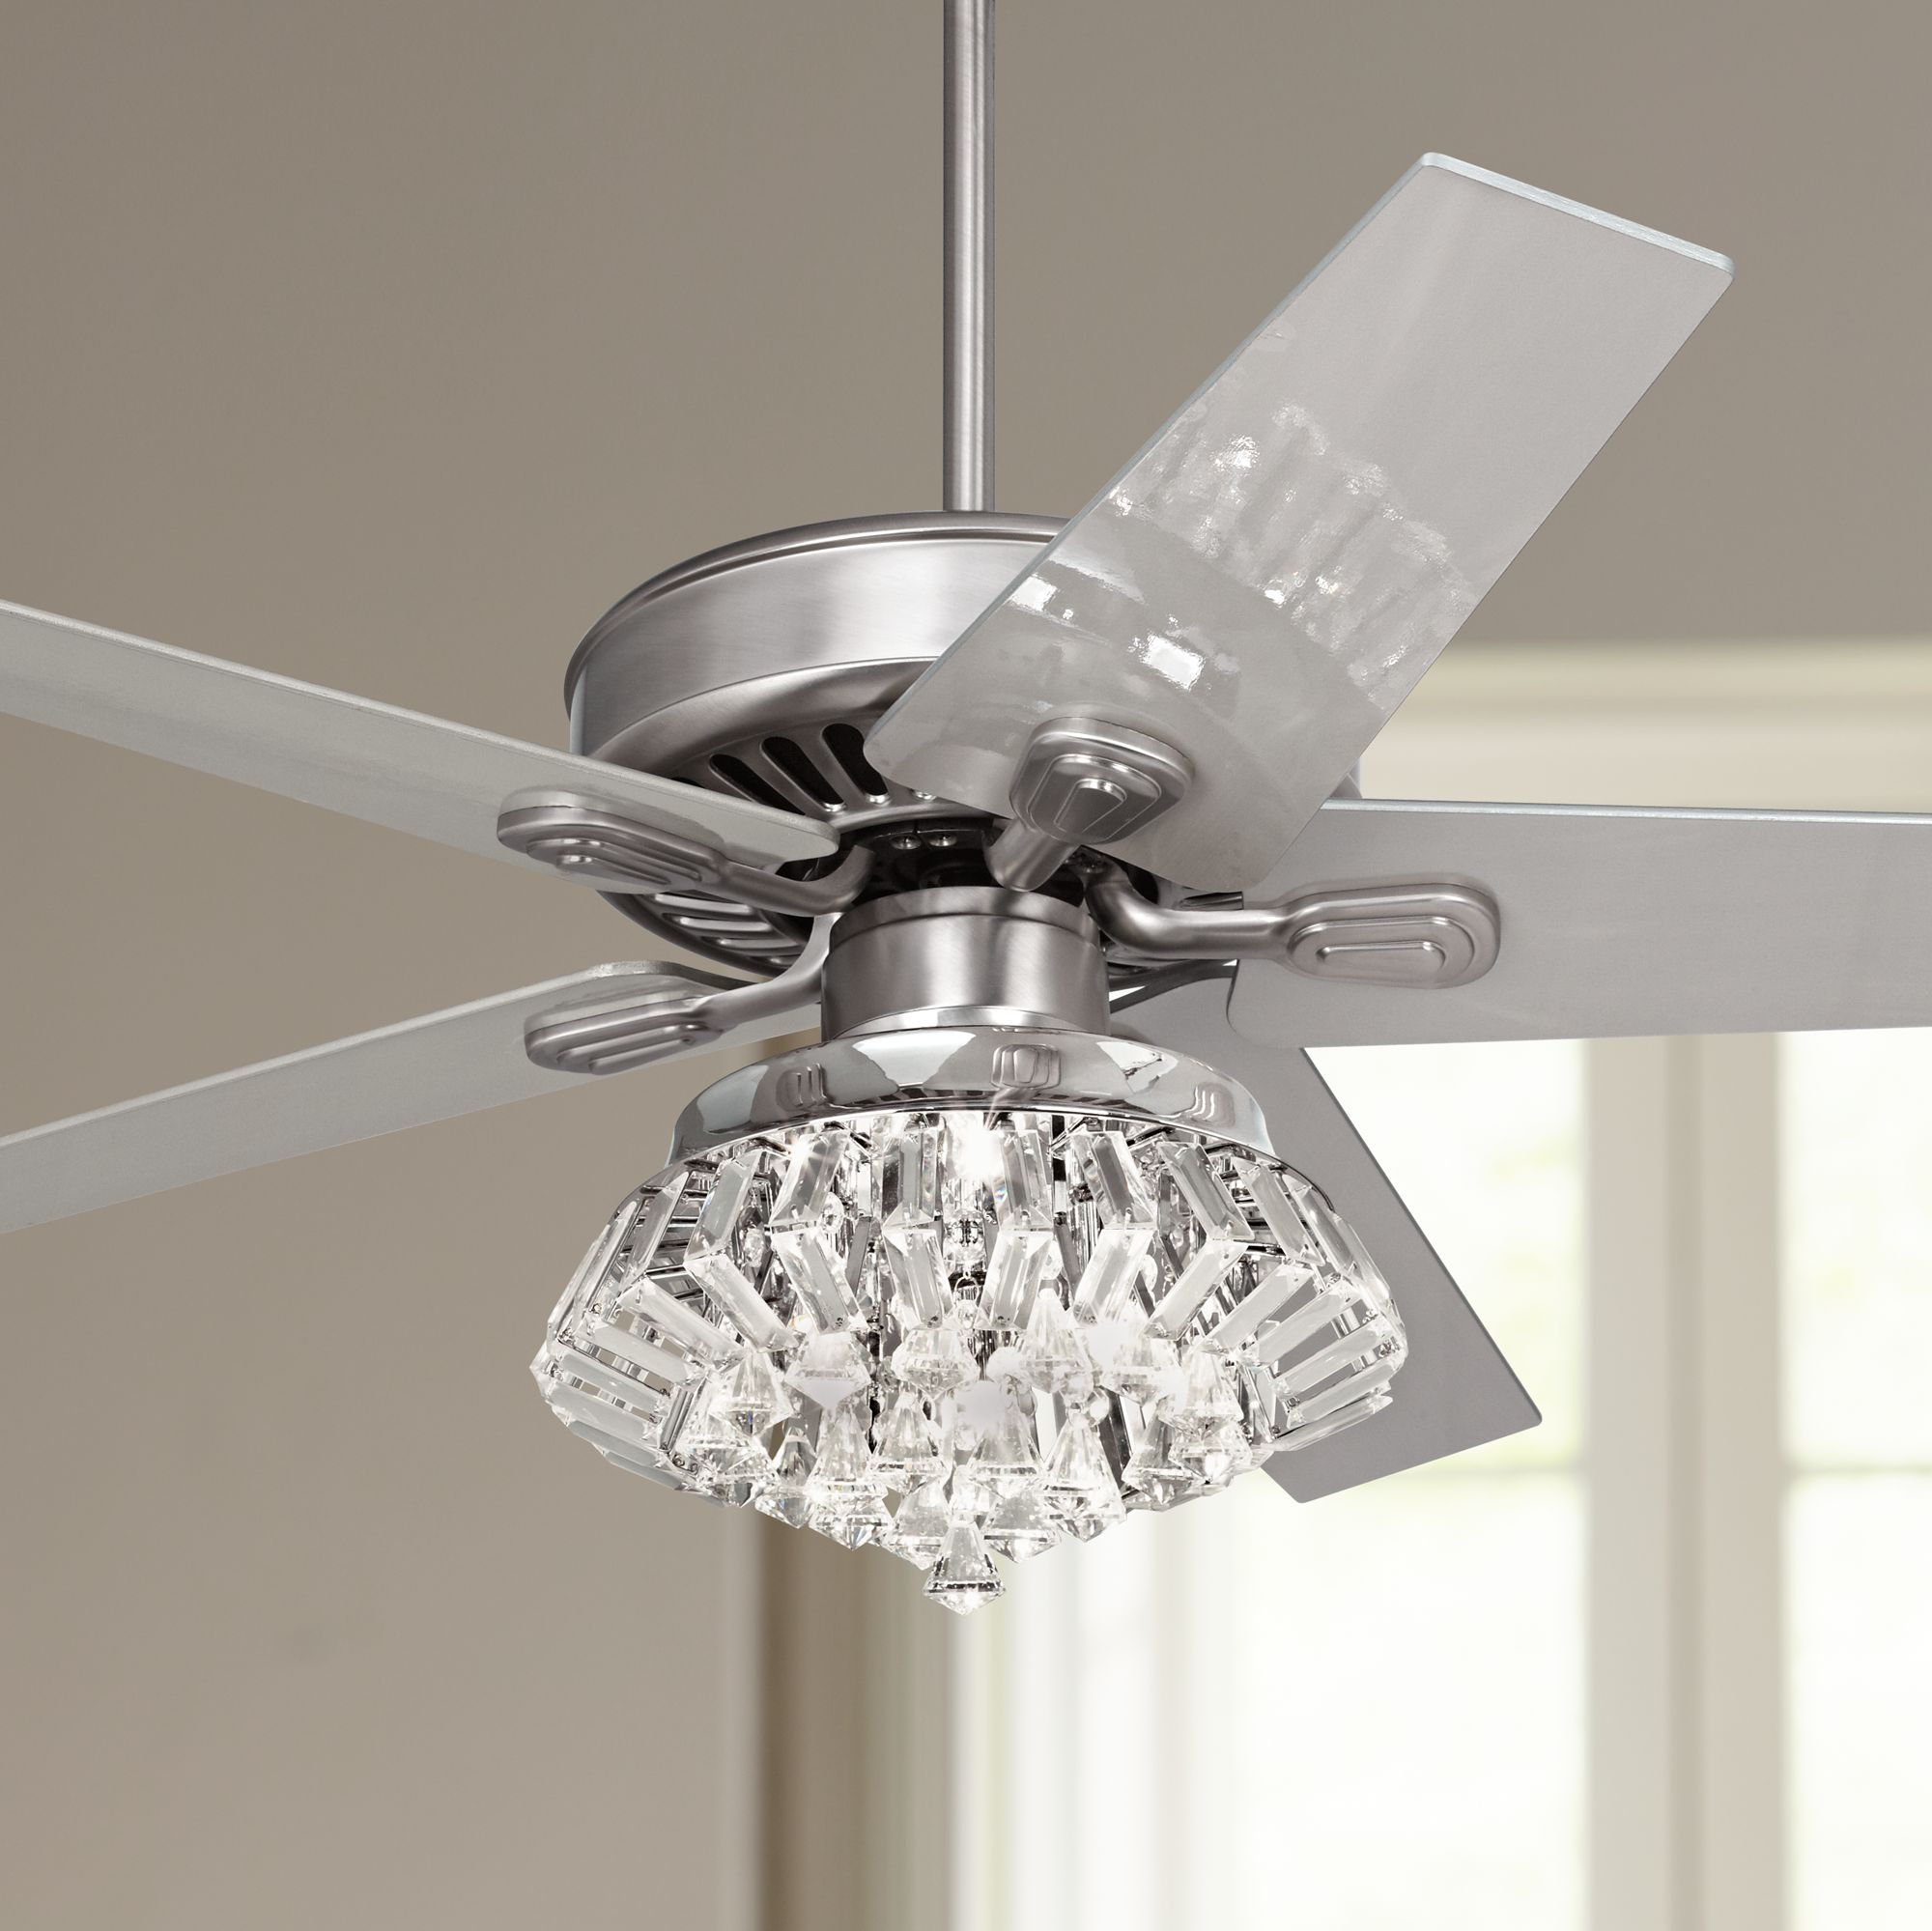 chandelier ceiling light the installing with cdbossington contemporary beat design fan three blade kit